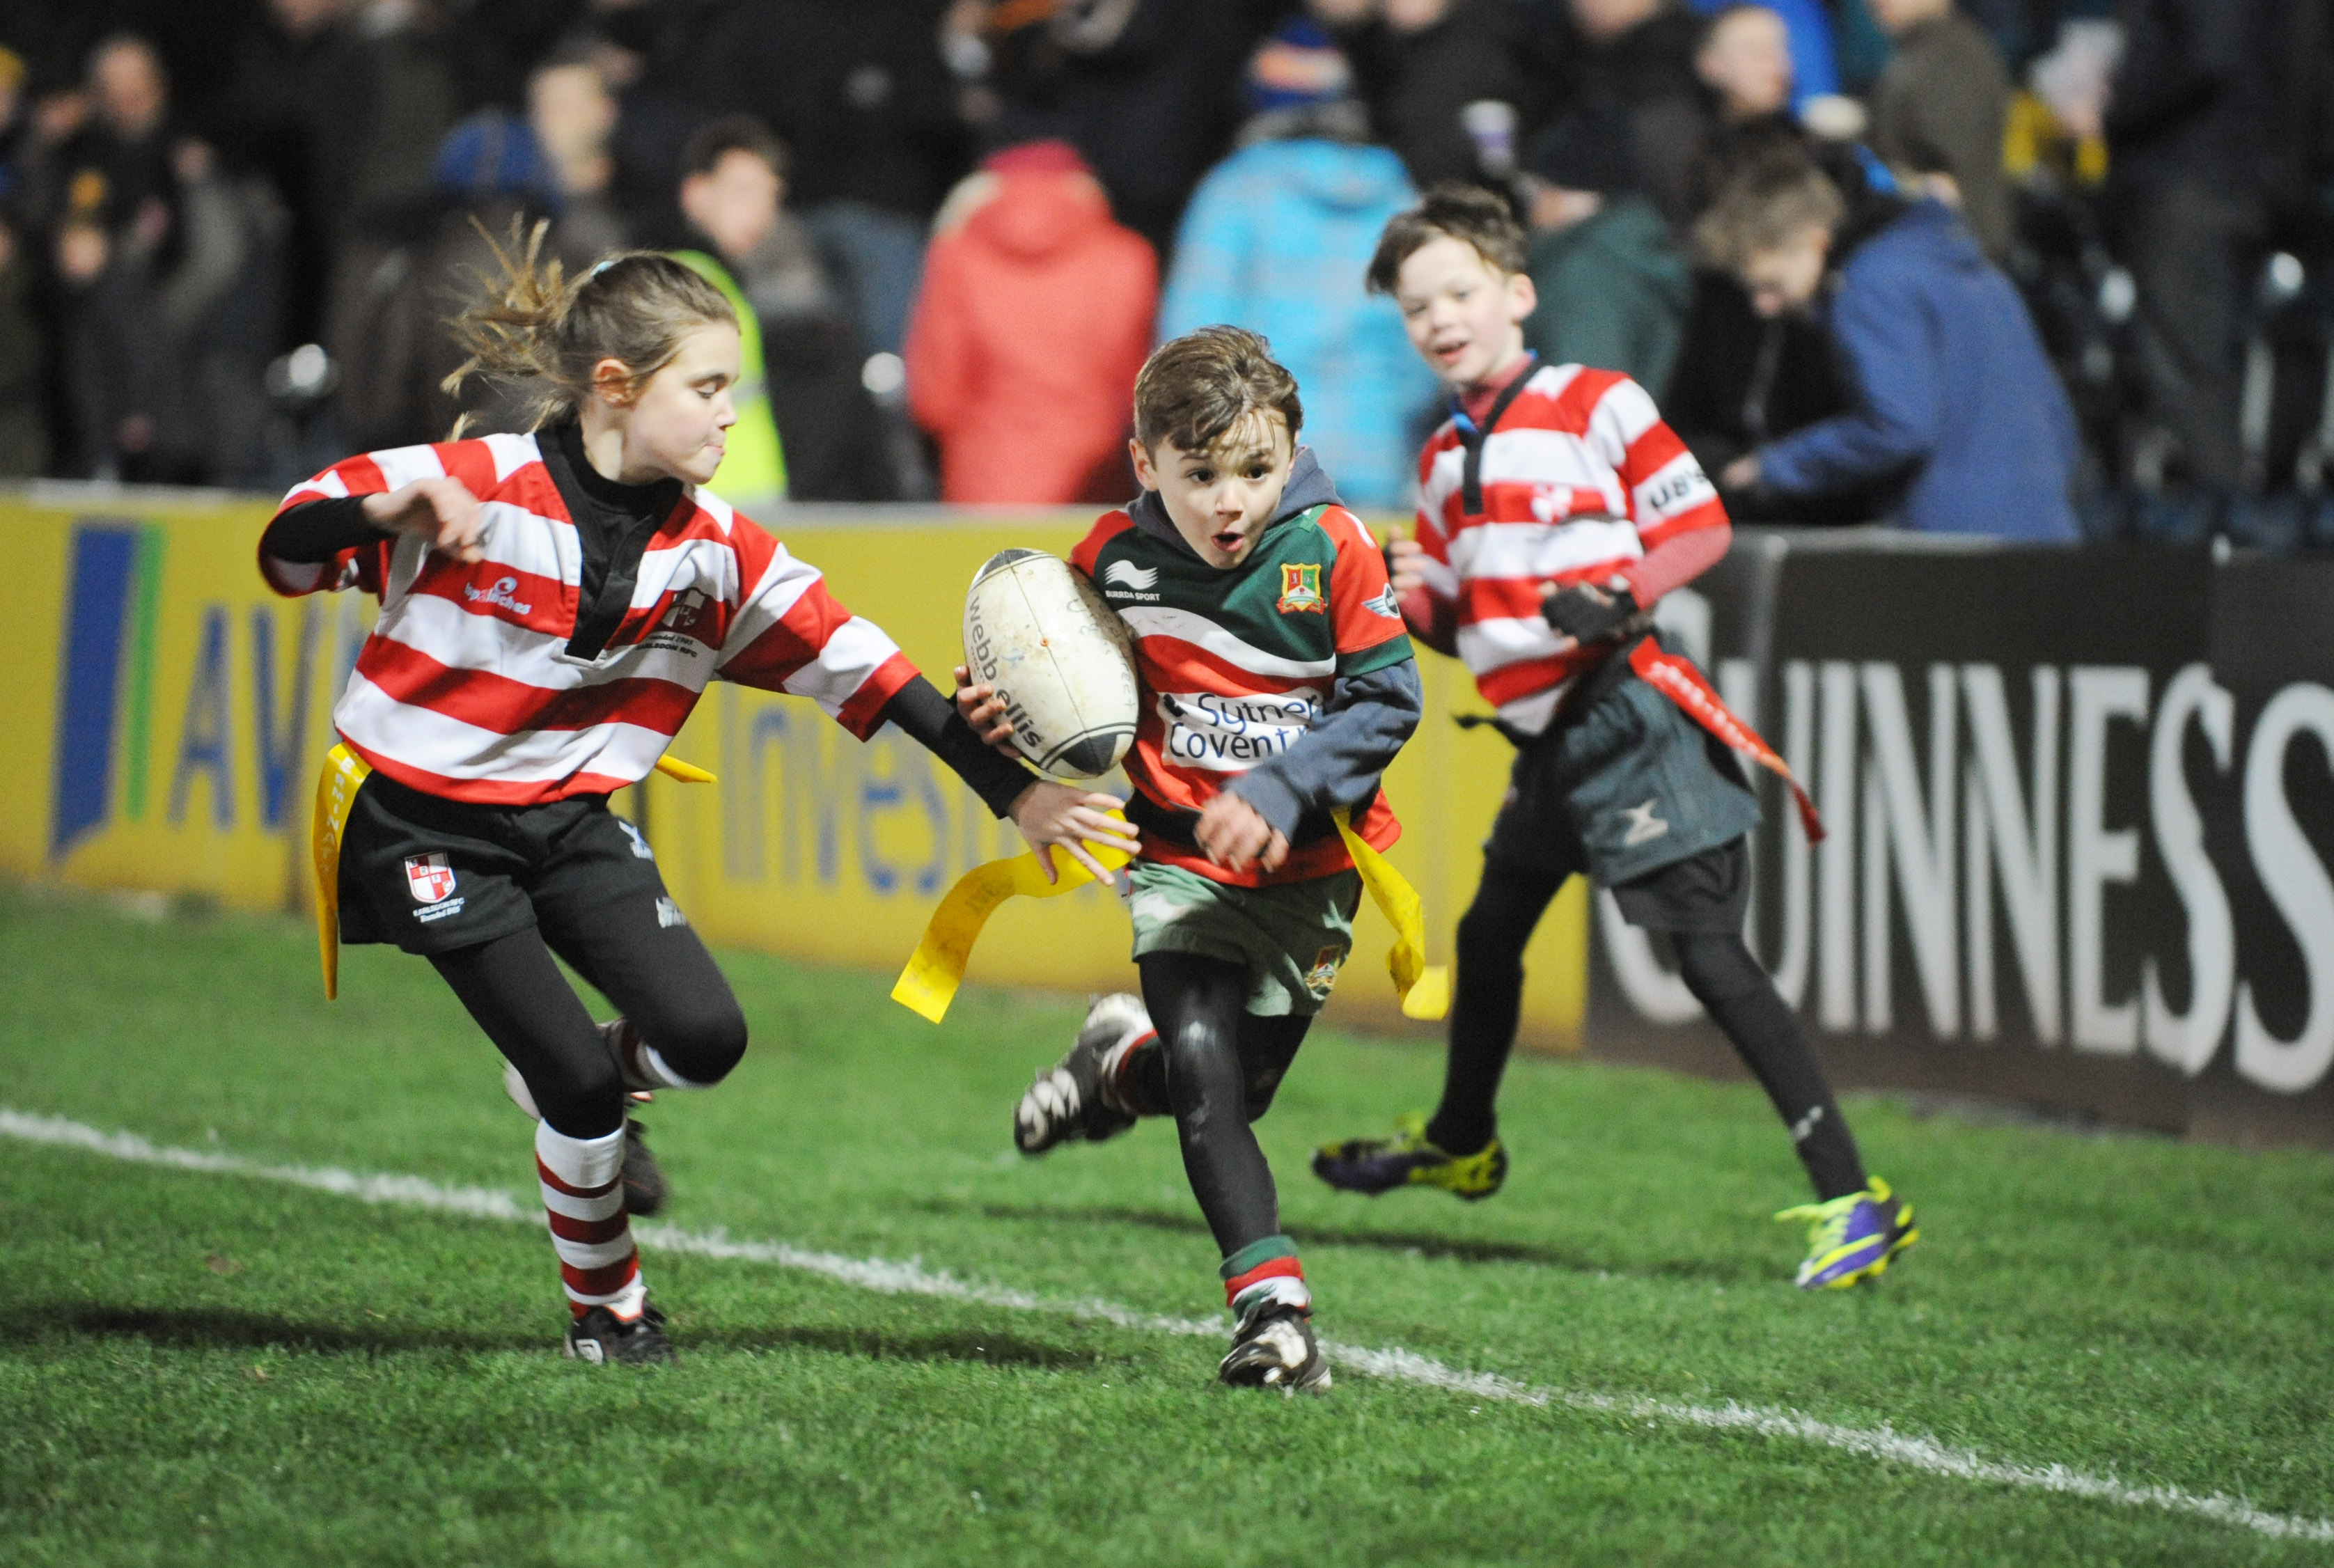 Should winning be scrapped in kids rugby?